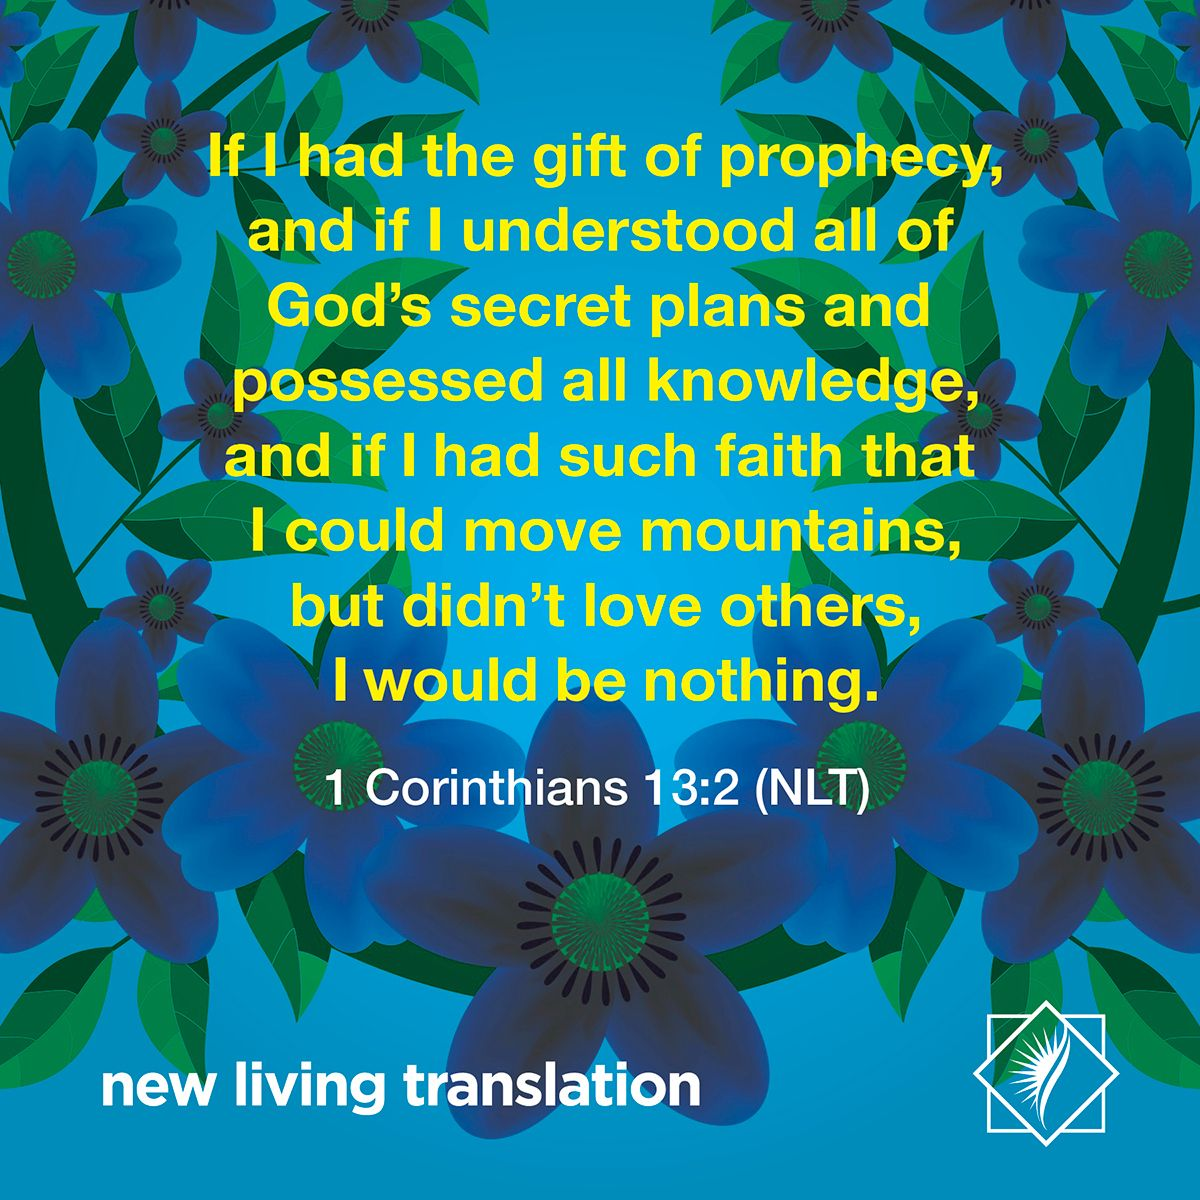 If i had the gift of prophecy and if i understood all of